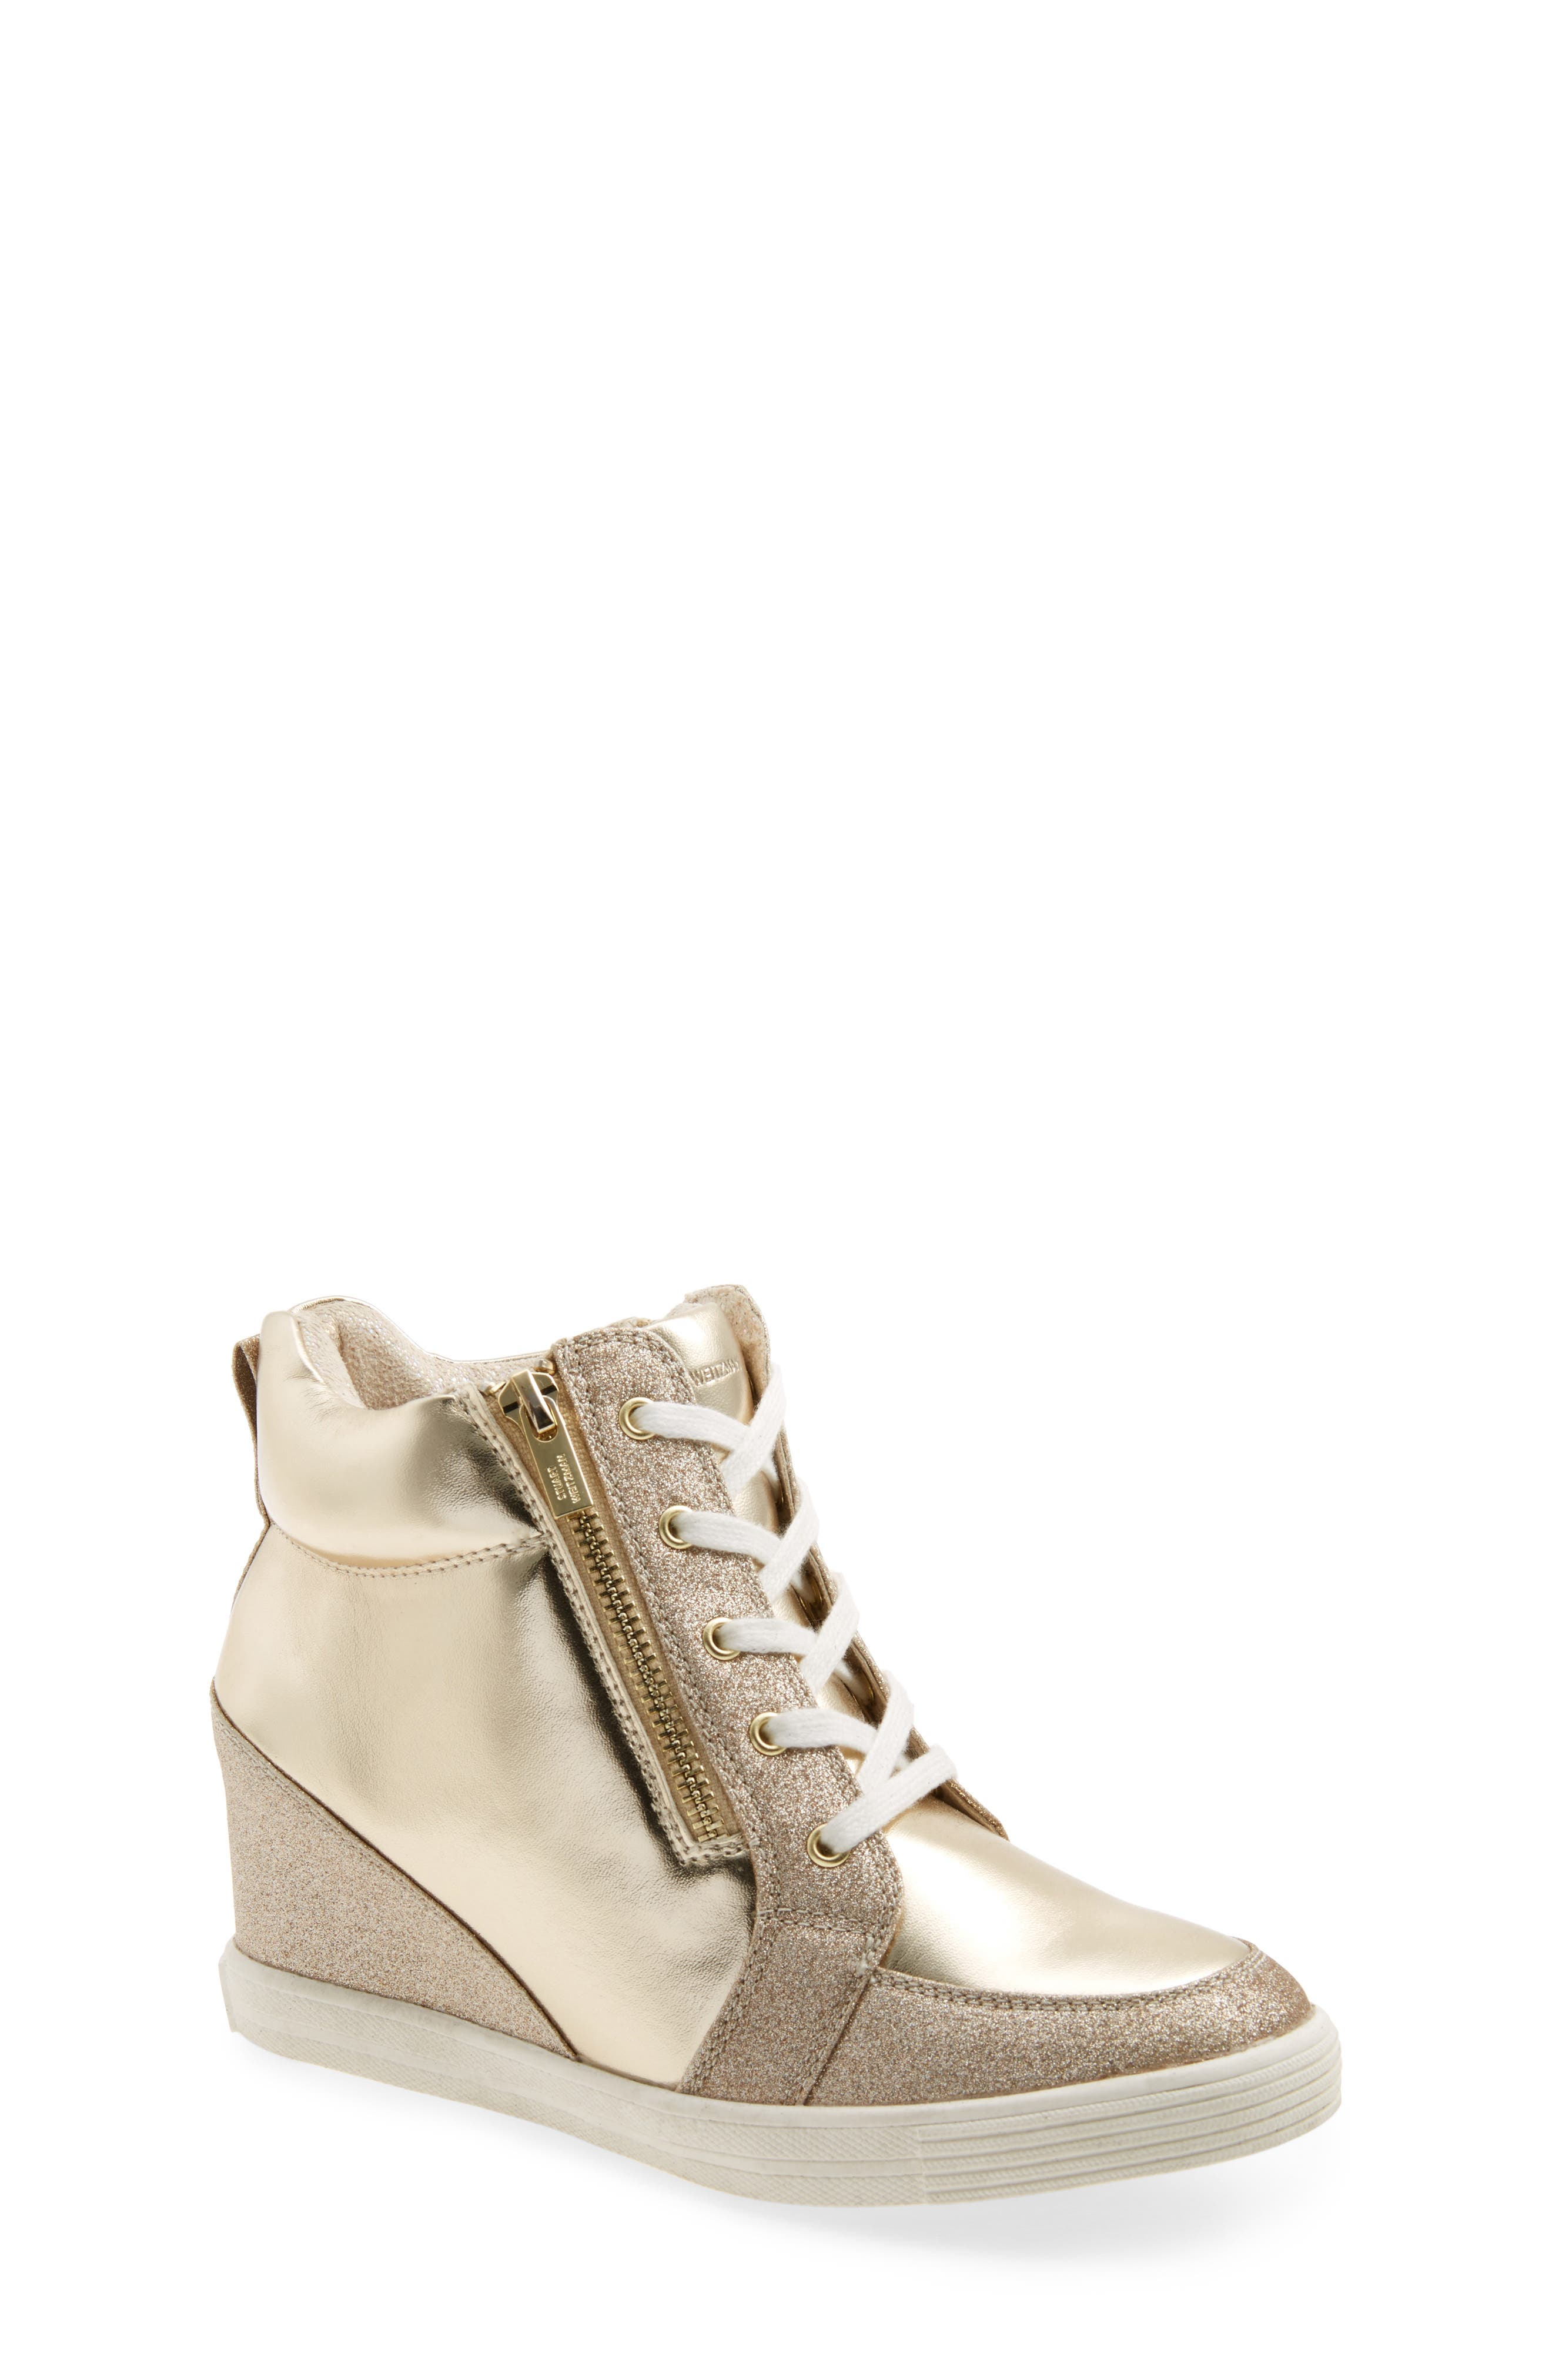 Stuart Weitzman Vance High Top Wedge Sneaker (Toddler, Little Kid & Big Kid))